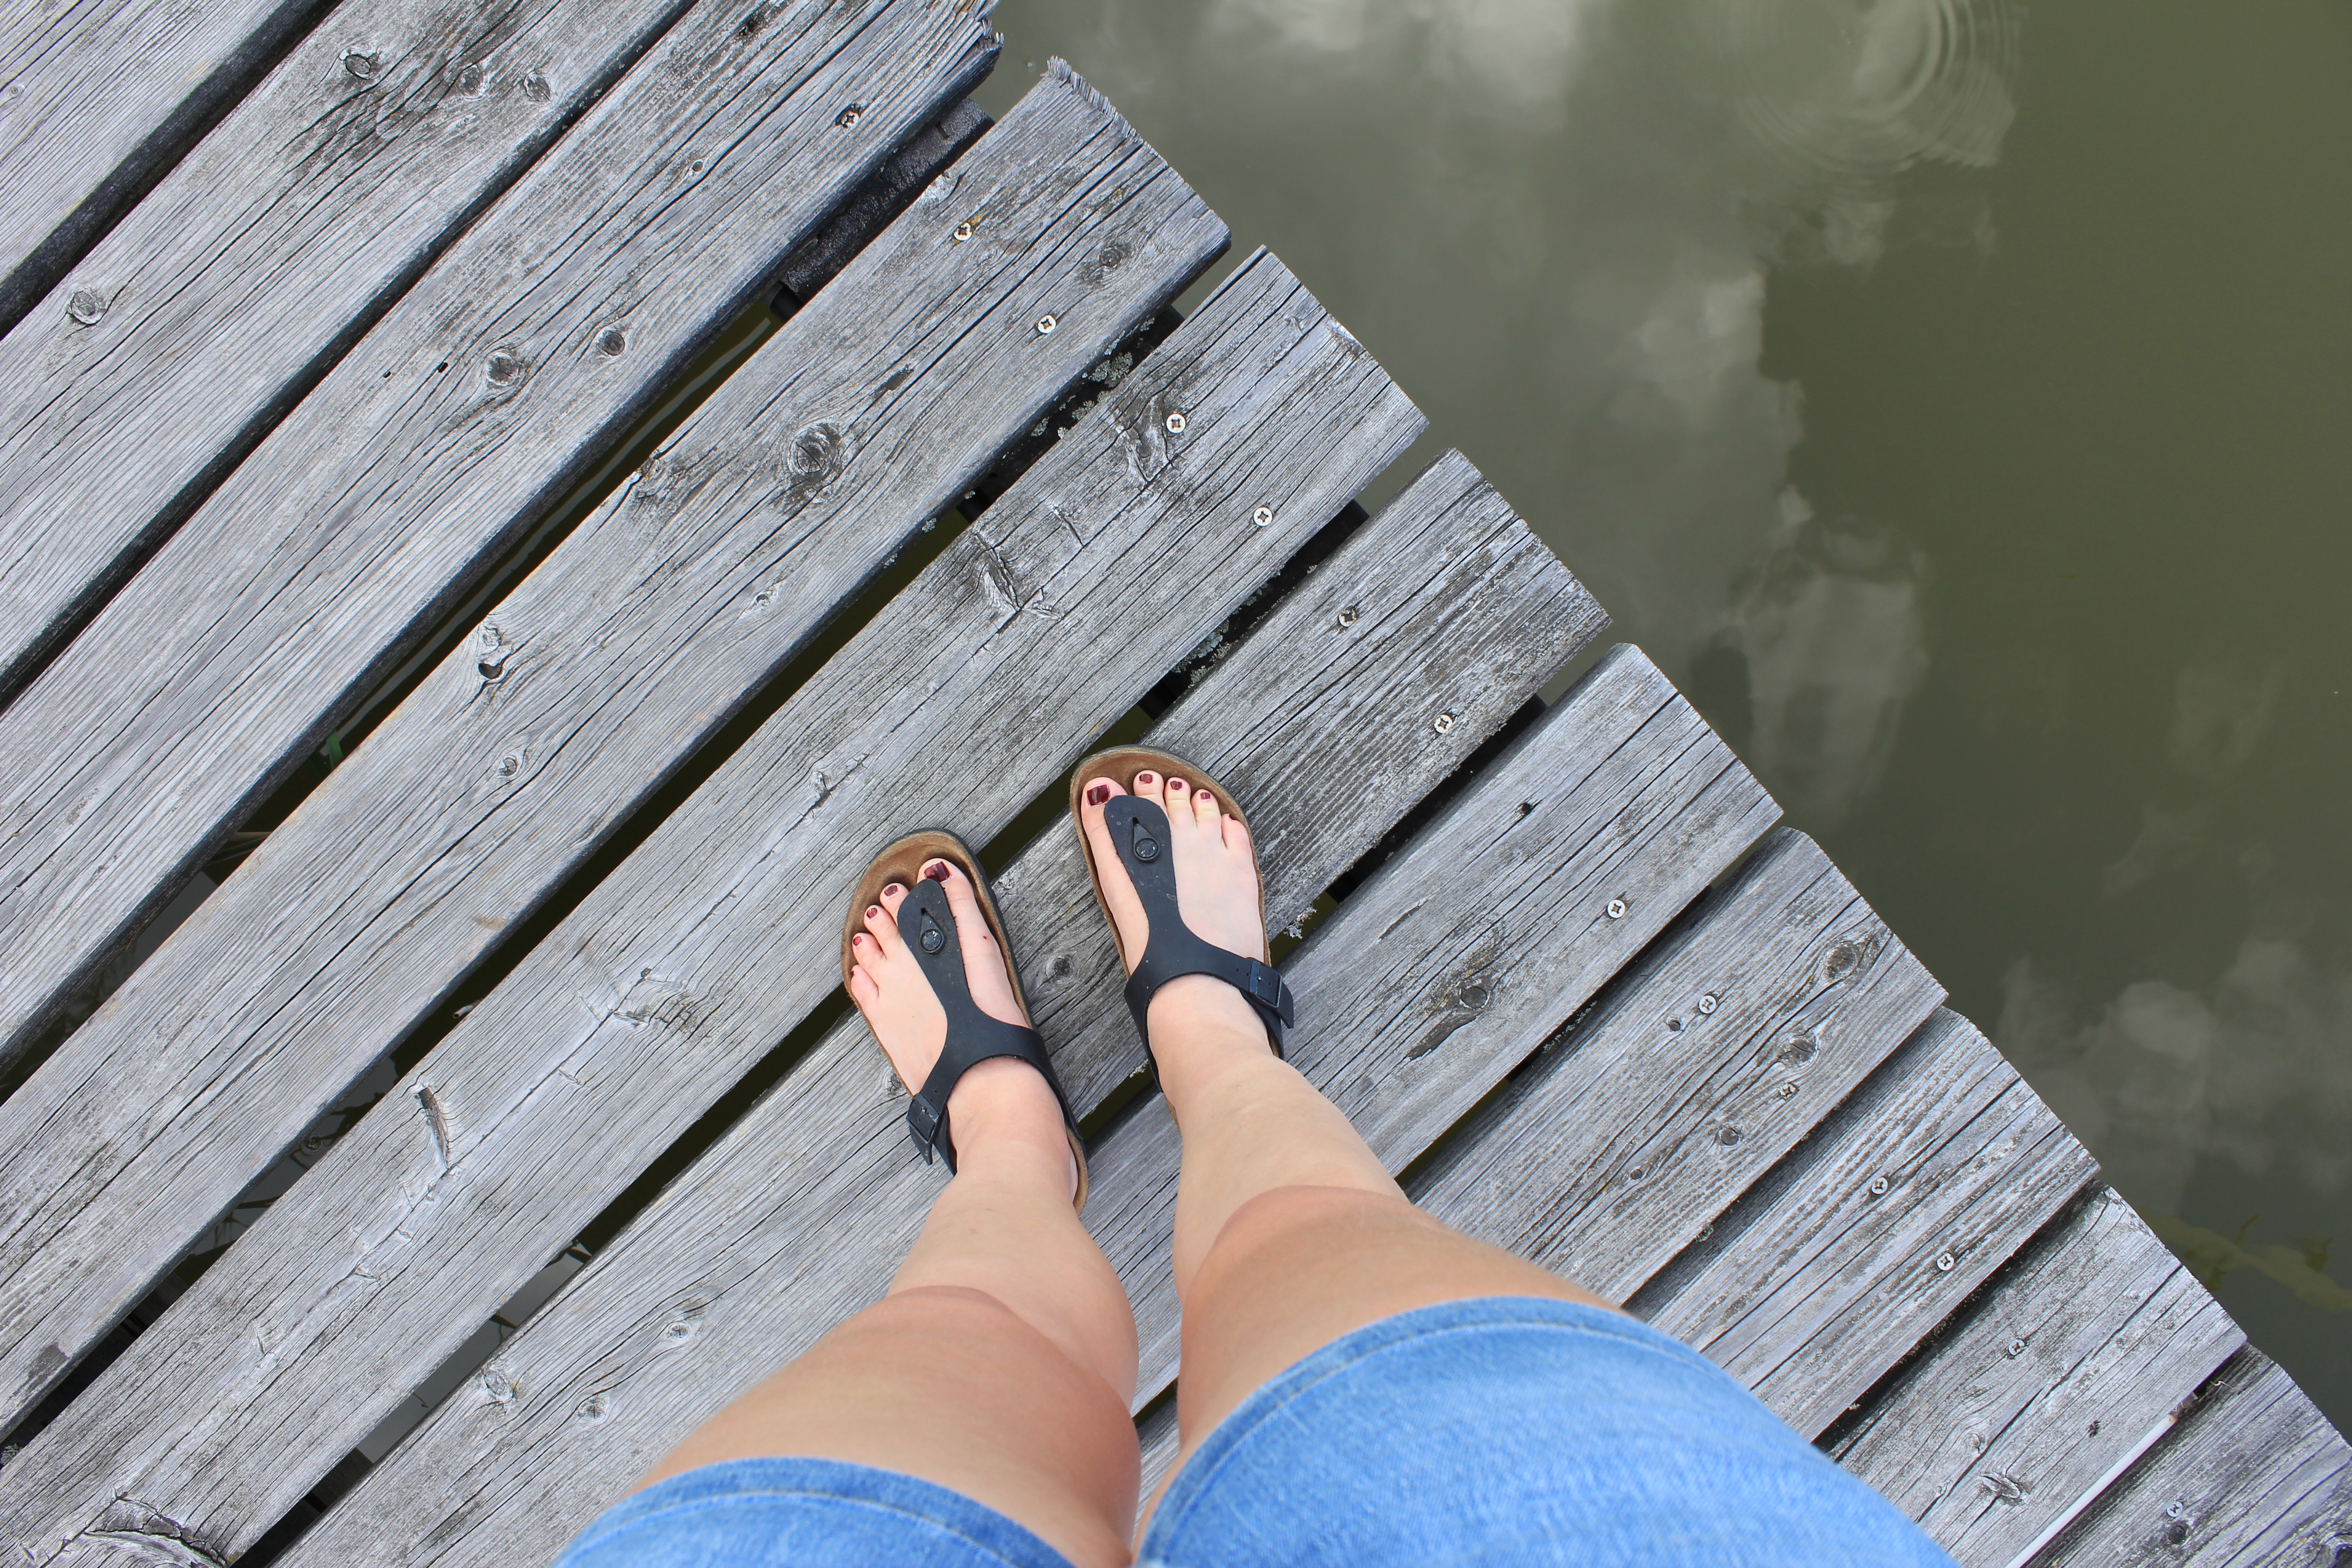 10 travel essentials which I always forget - Flip flops